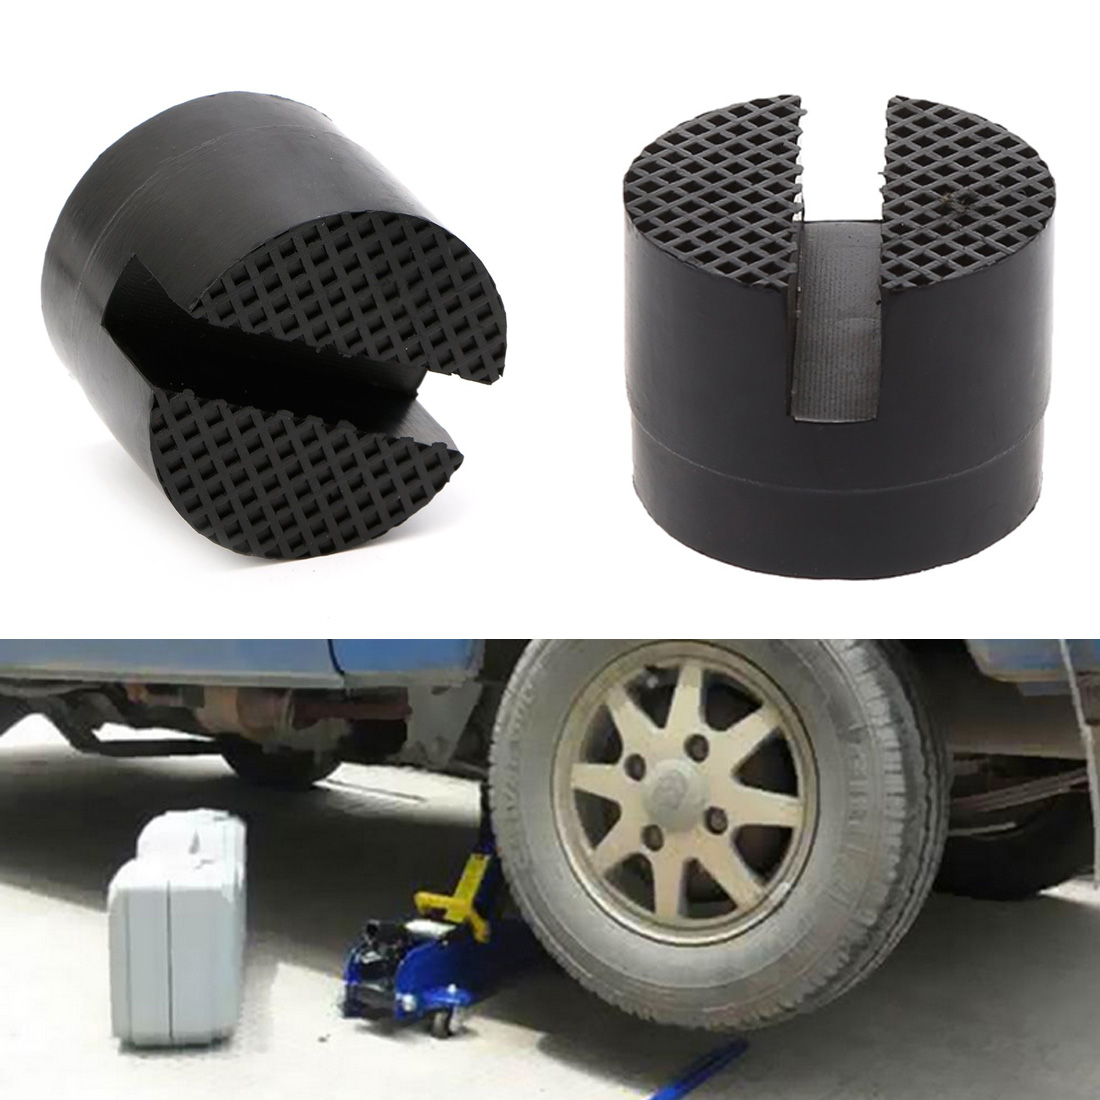 1pc Automobile Universal Bracket Rubber Pad And Jack Support Rubber Tool For Car Lift Automobile Repair Tools